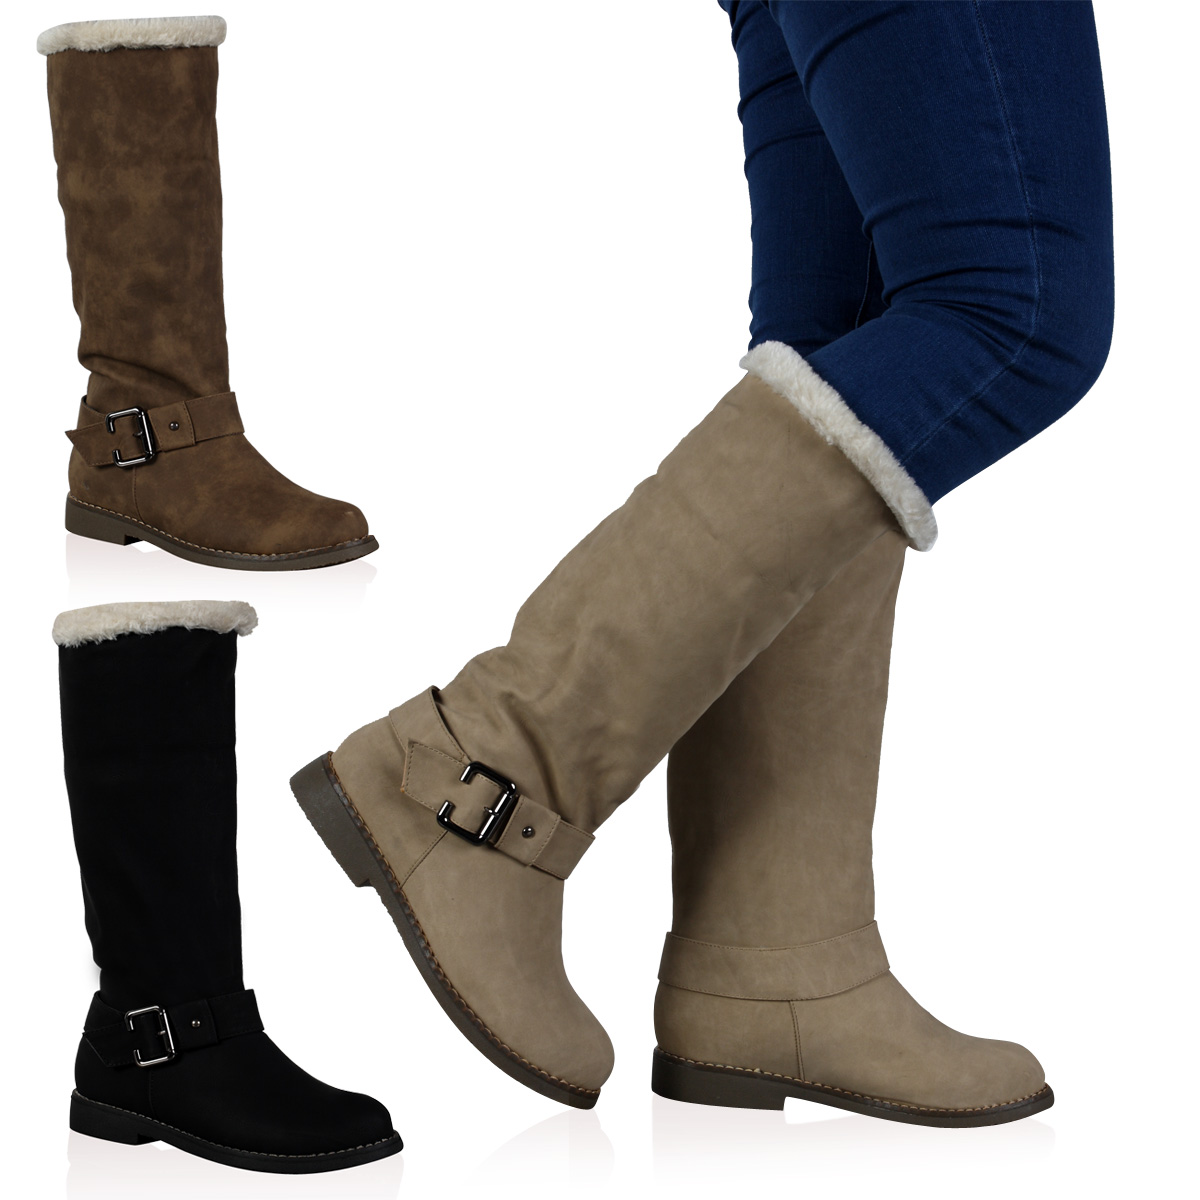 Womens Snow Boots Product Image : Charming Fur Lined Womens Boots ...